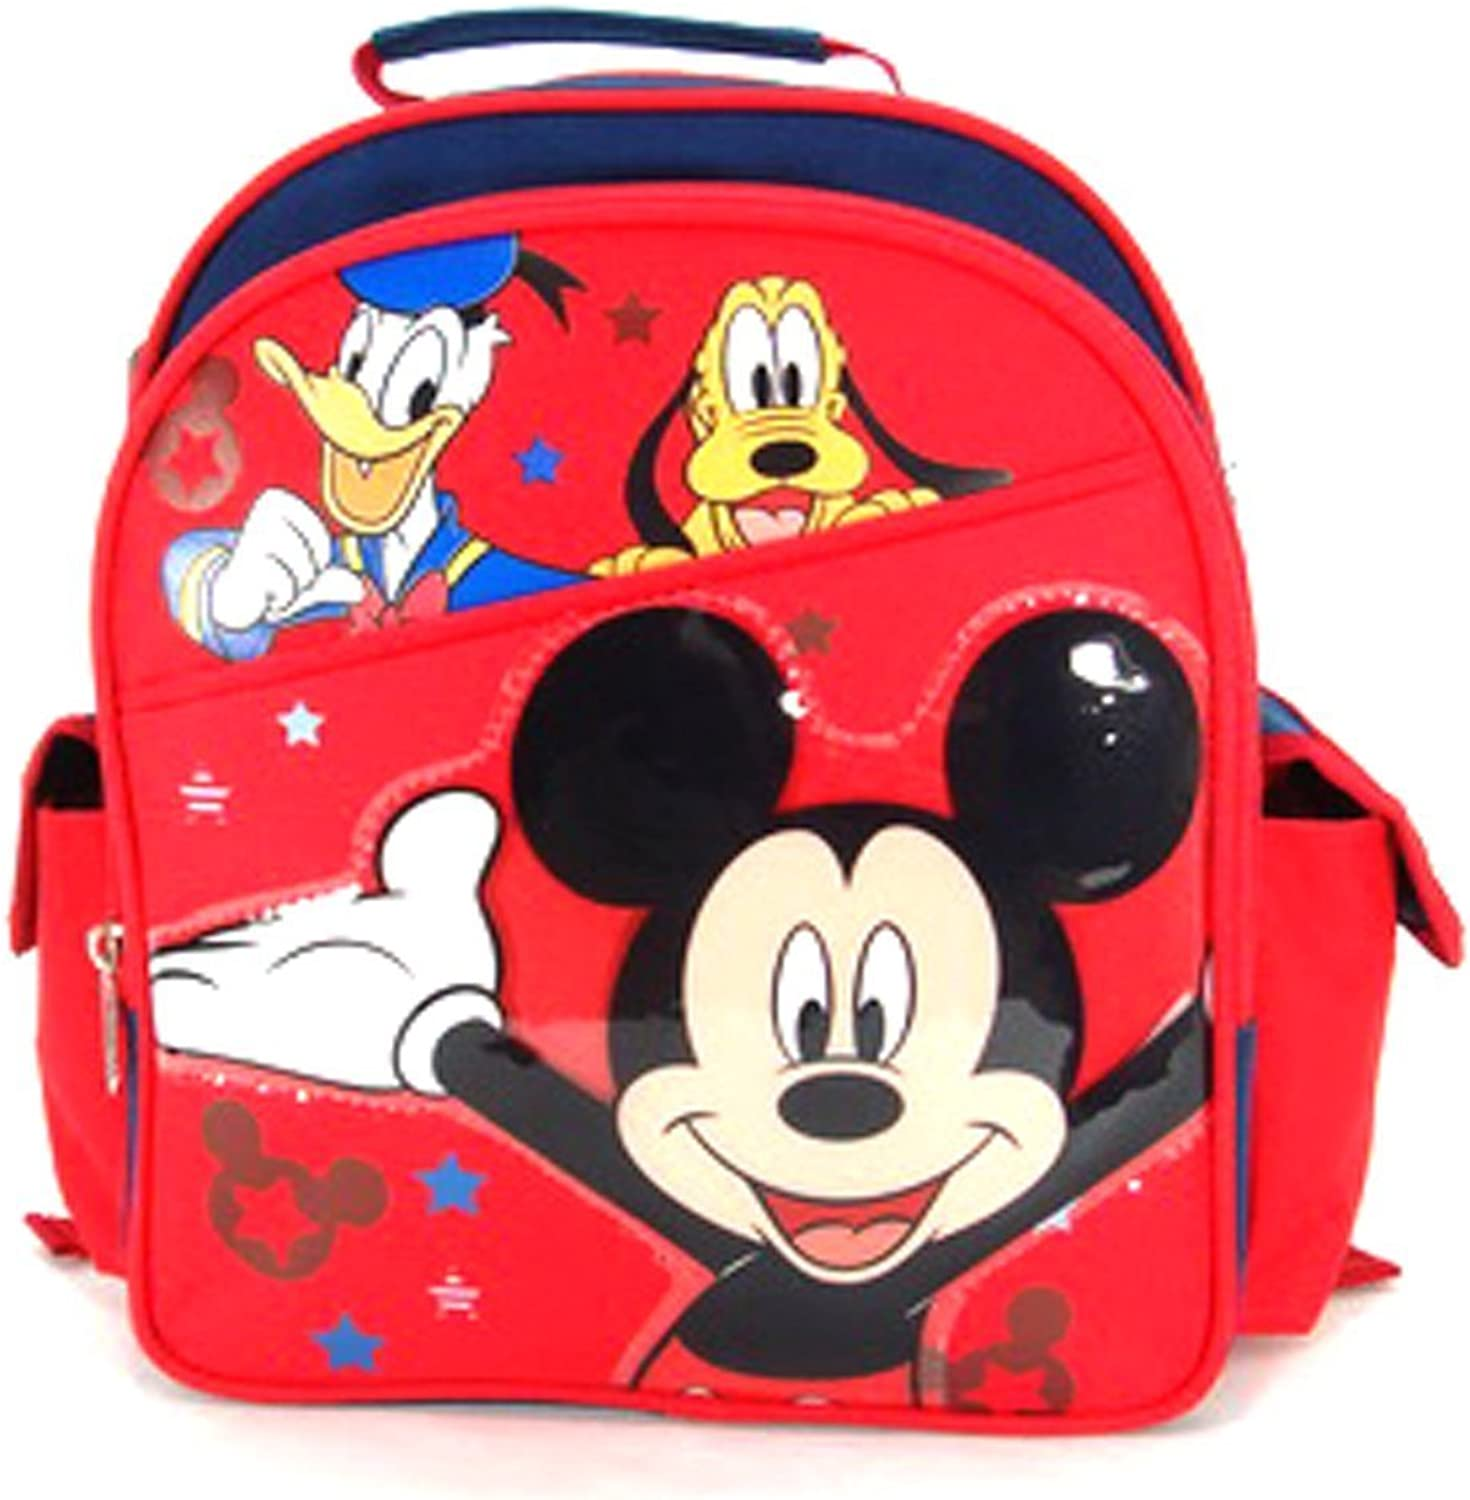 Mickey, Donald, and and and Pluto Rucksack mini B00EAZY282 | Online Shop Europe